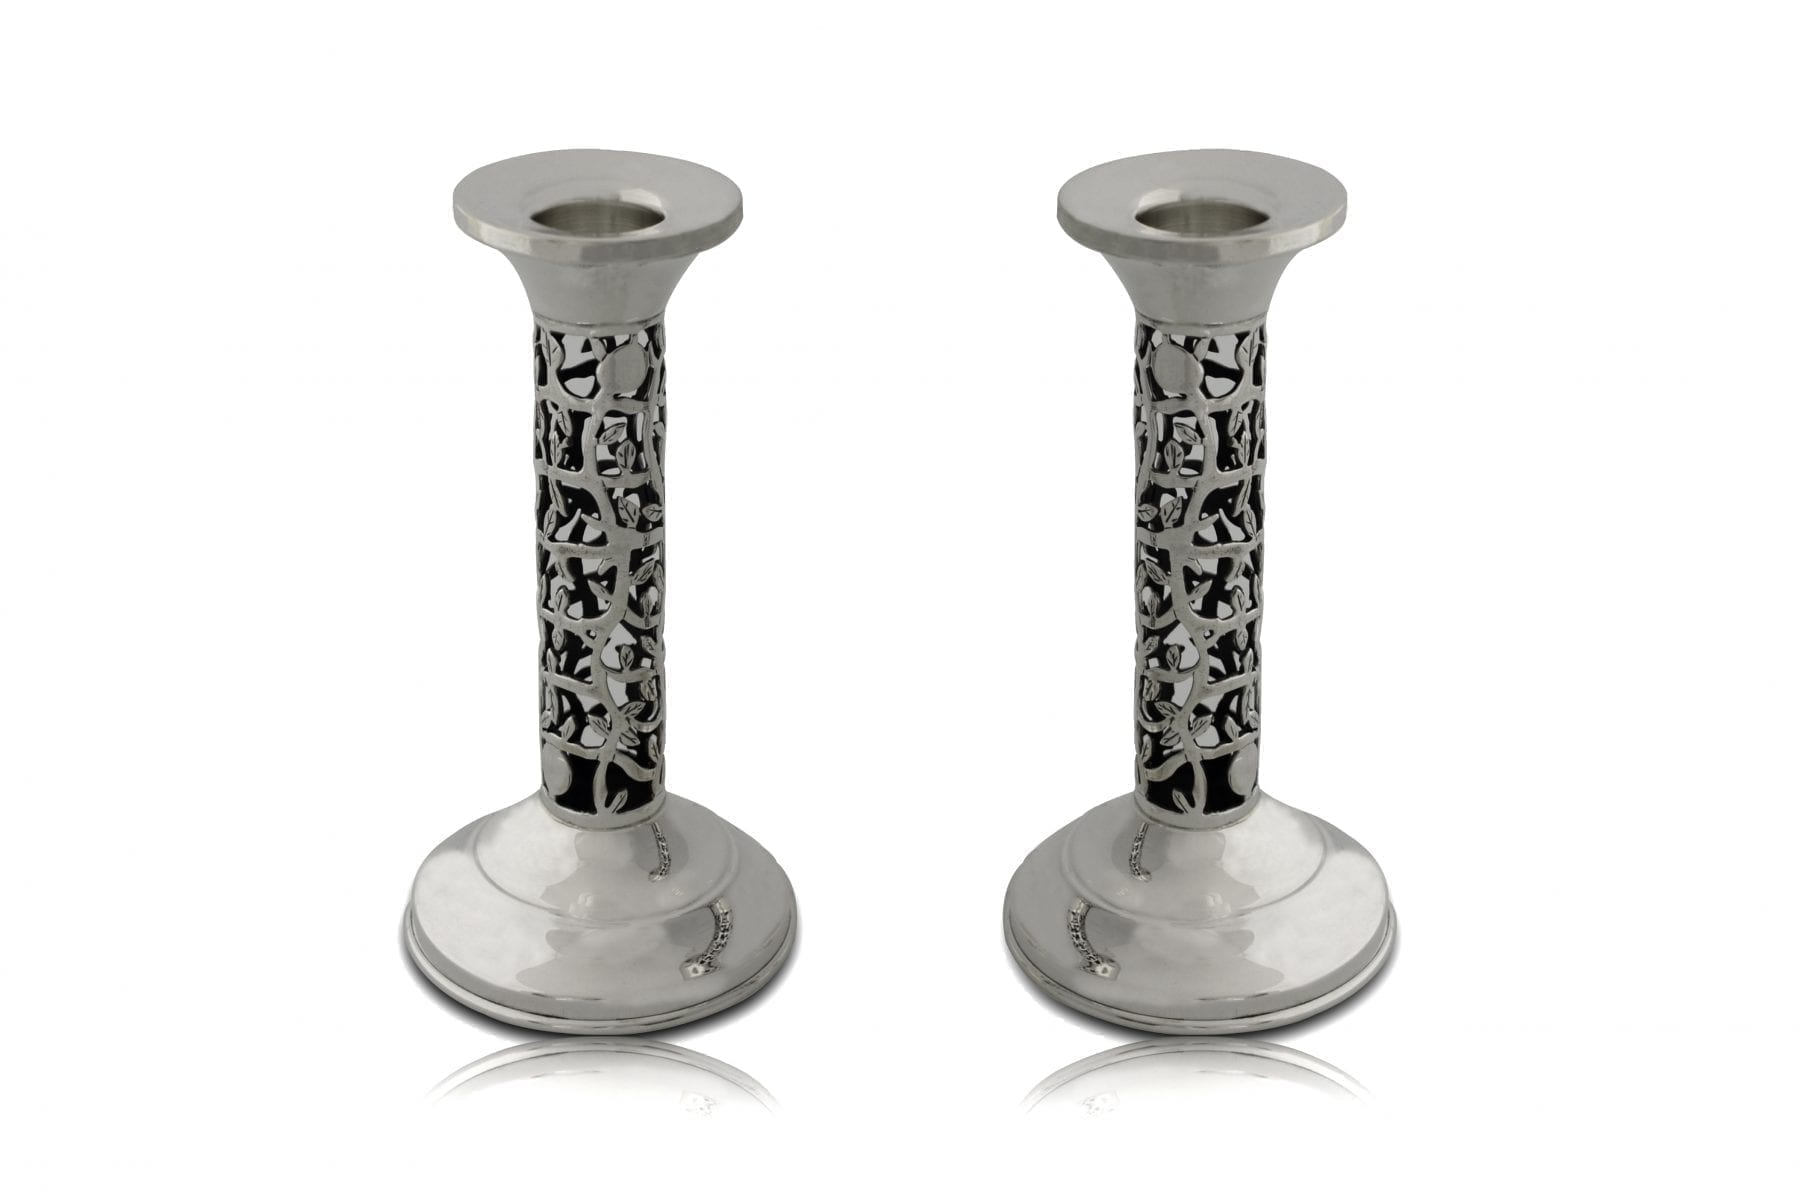 Petite, cut-out pattern sterling silver candlesticks. Shabbat Judaica made in Israel